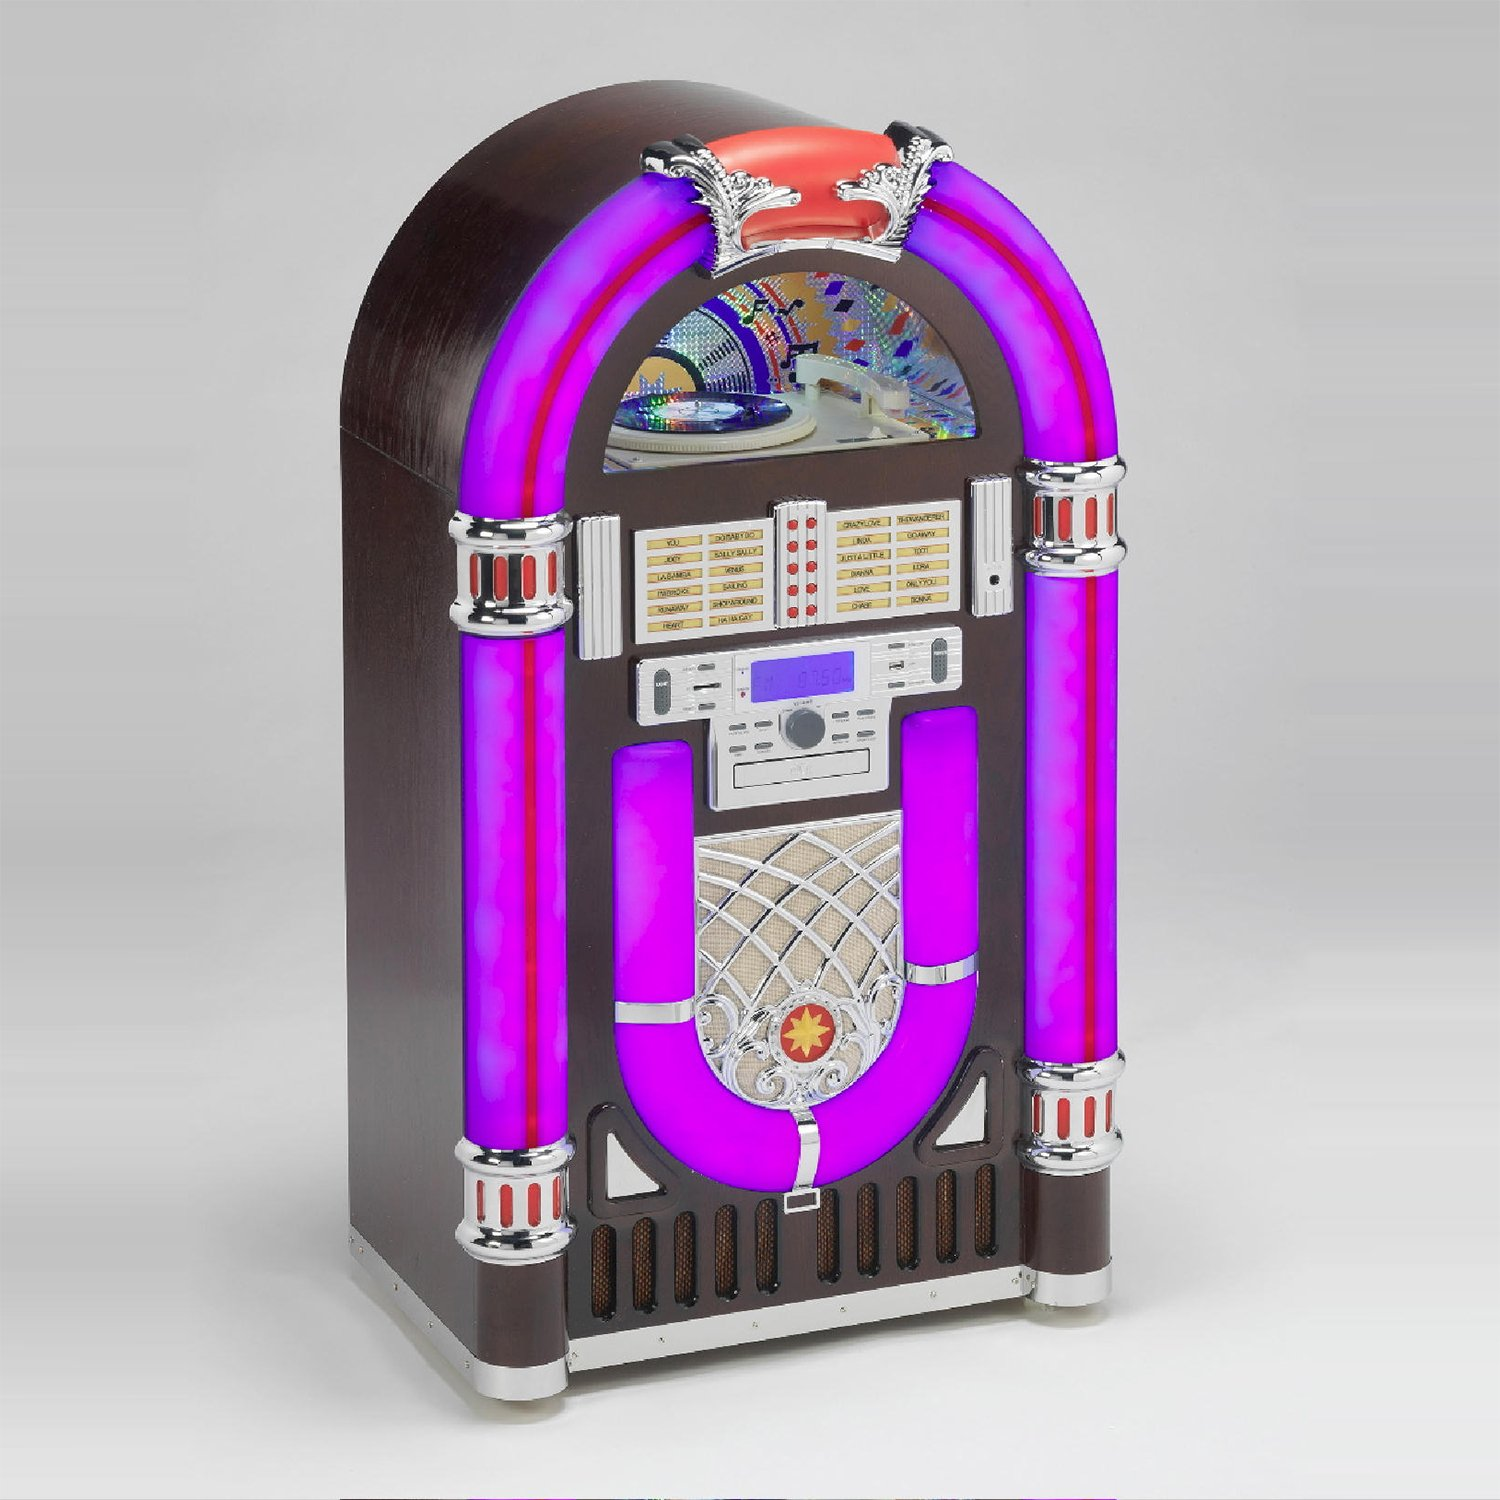 Limited Edition Floor Standing Jukebox